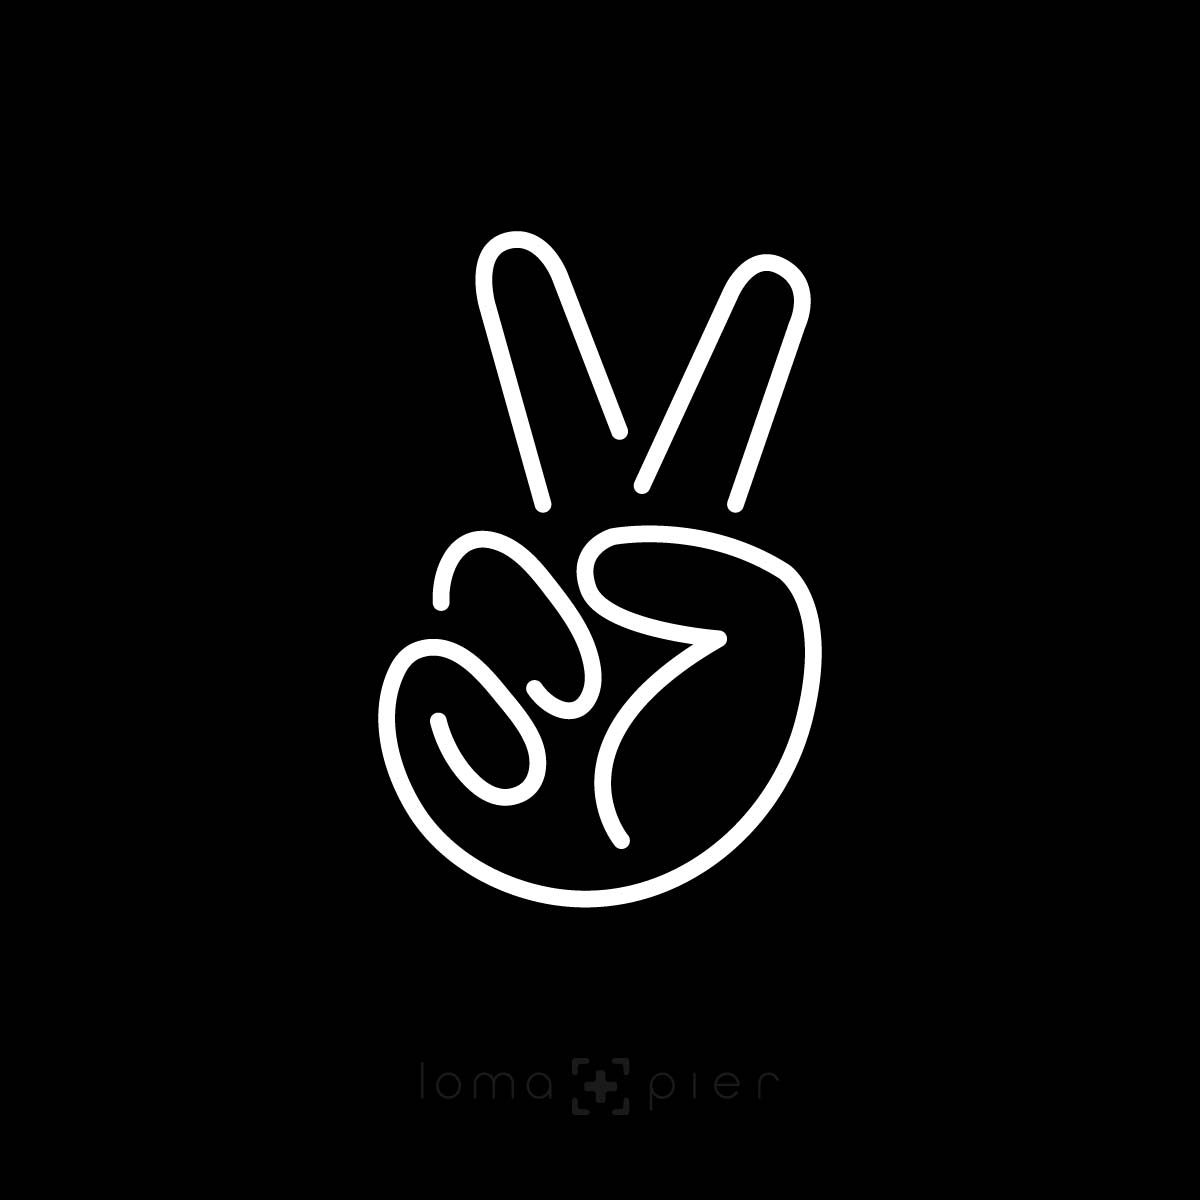 PEACE SIGN HAND icon design by loma+pier hat store